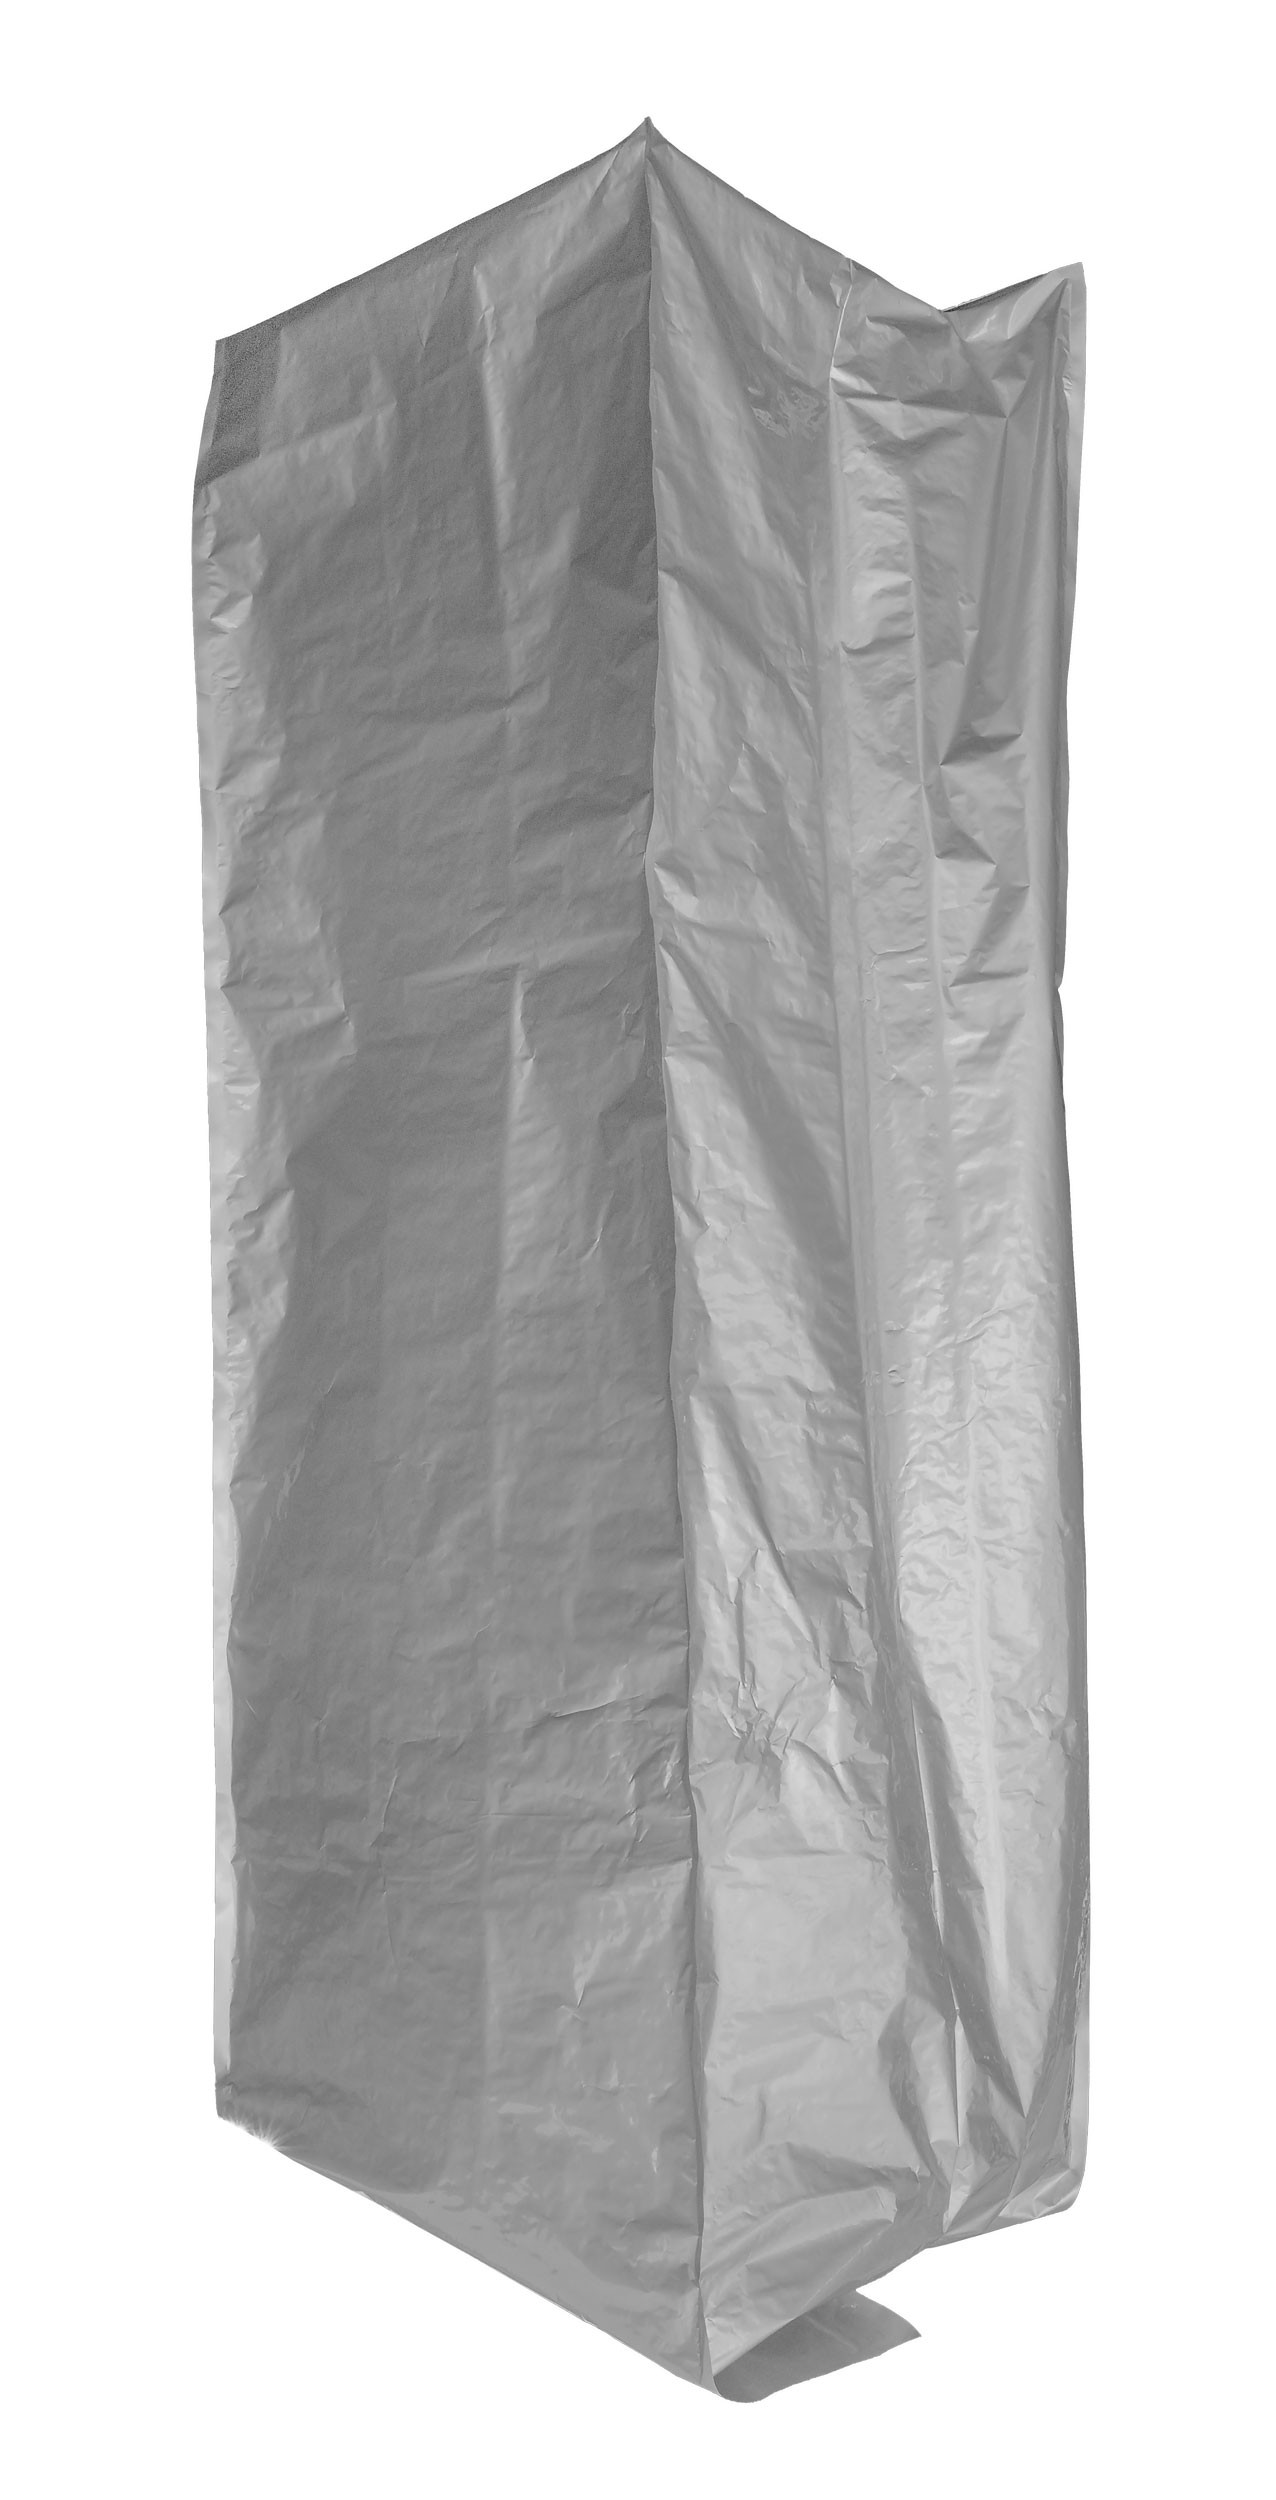 Five Side Seal Aluminum Moisture Barrier Bag